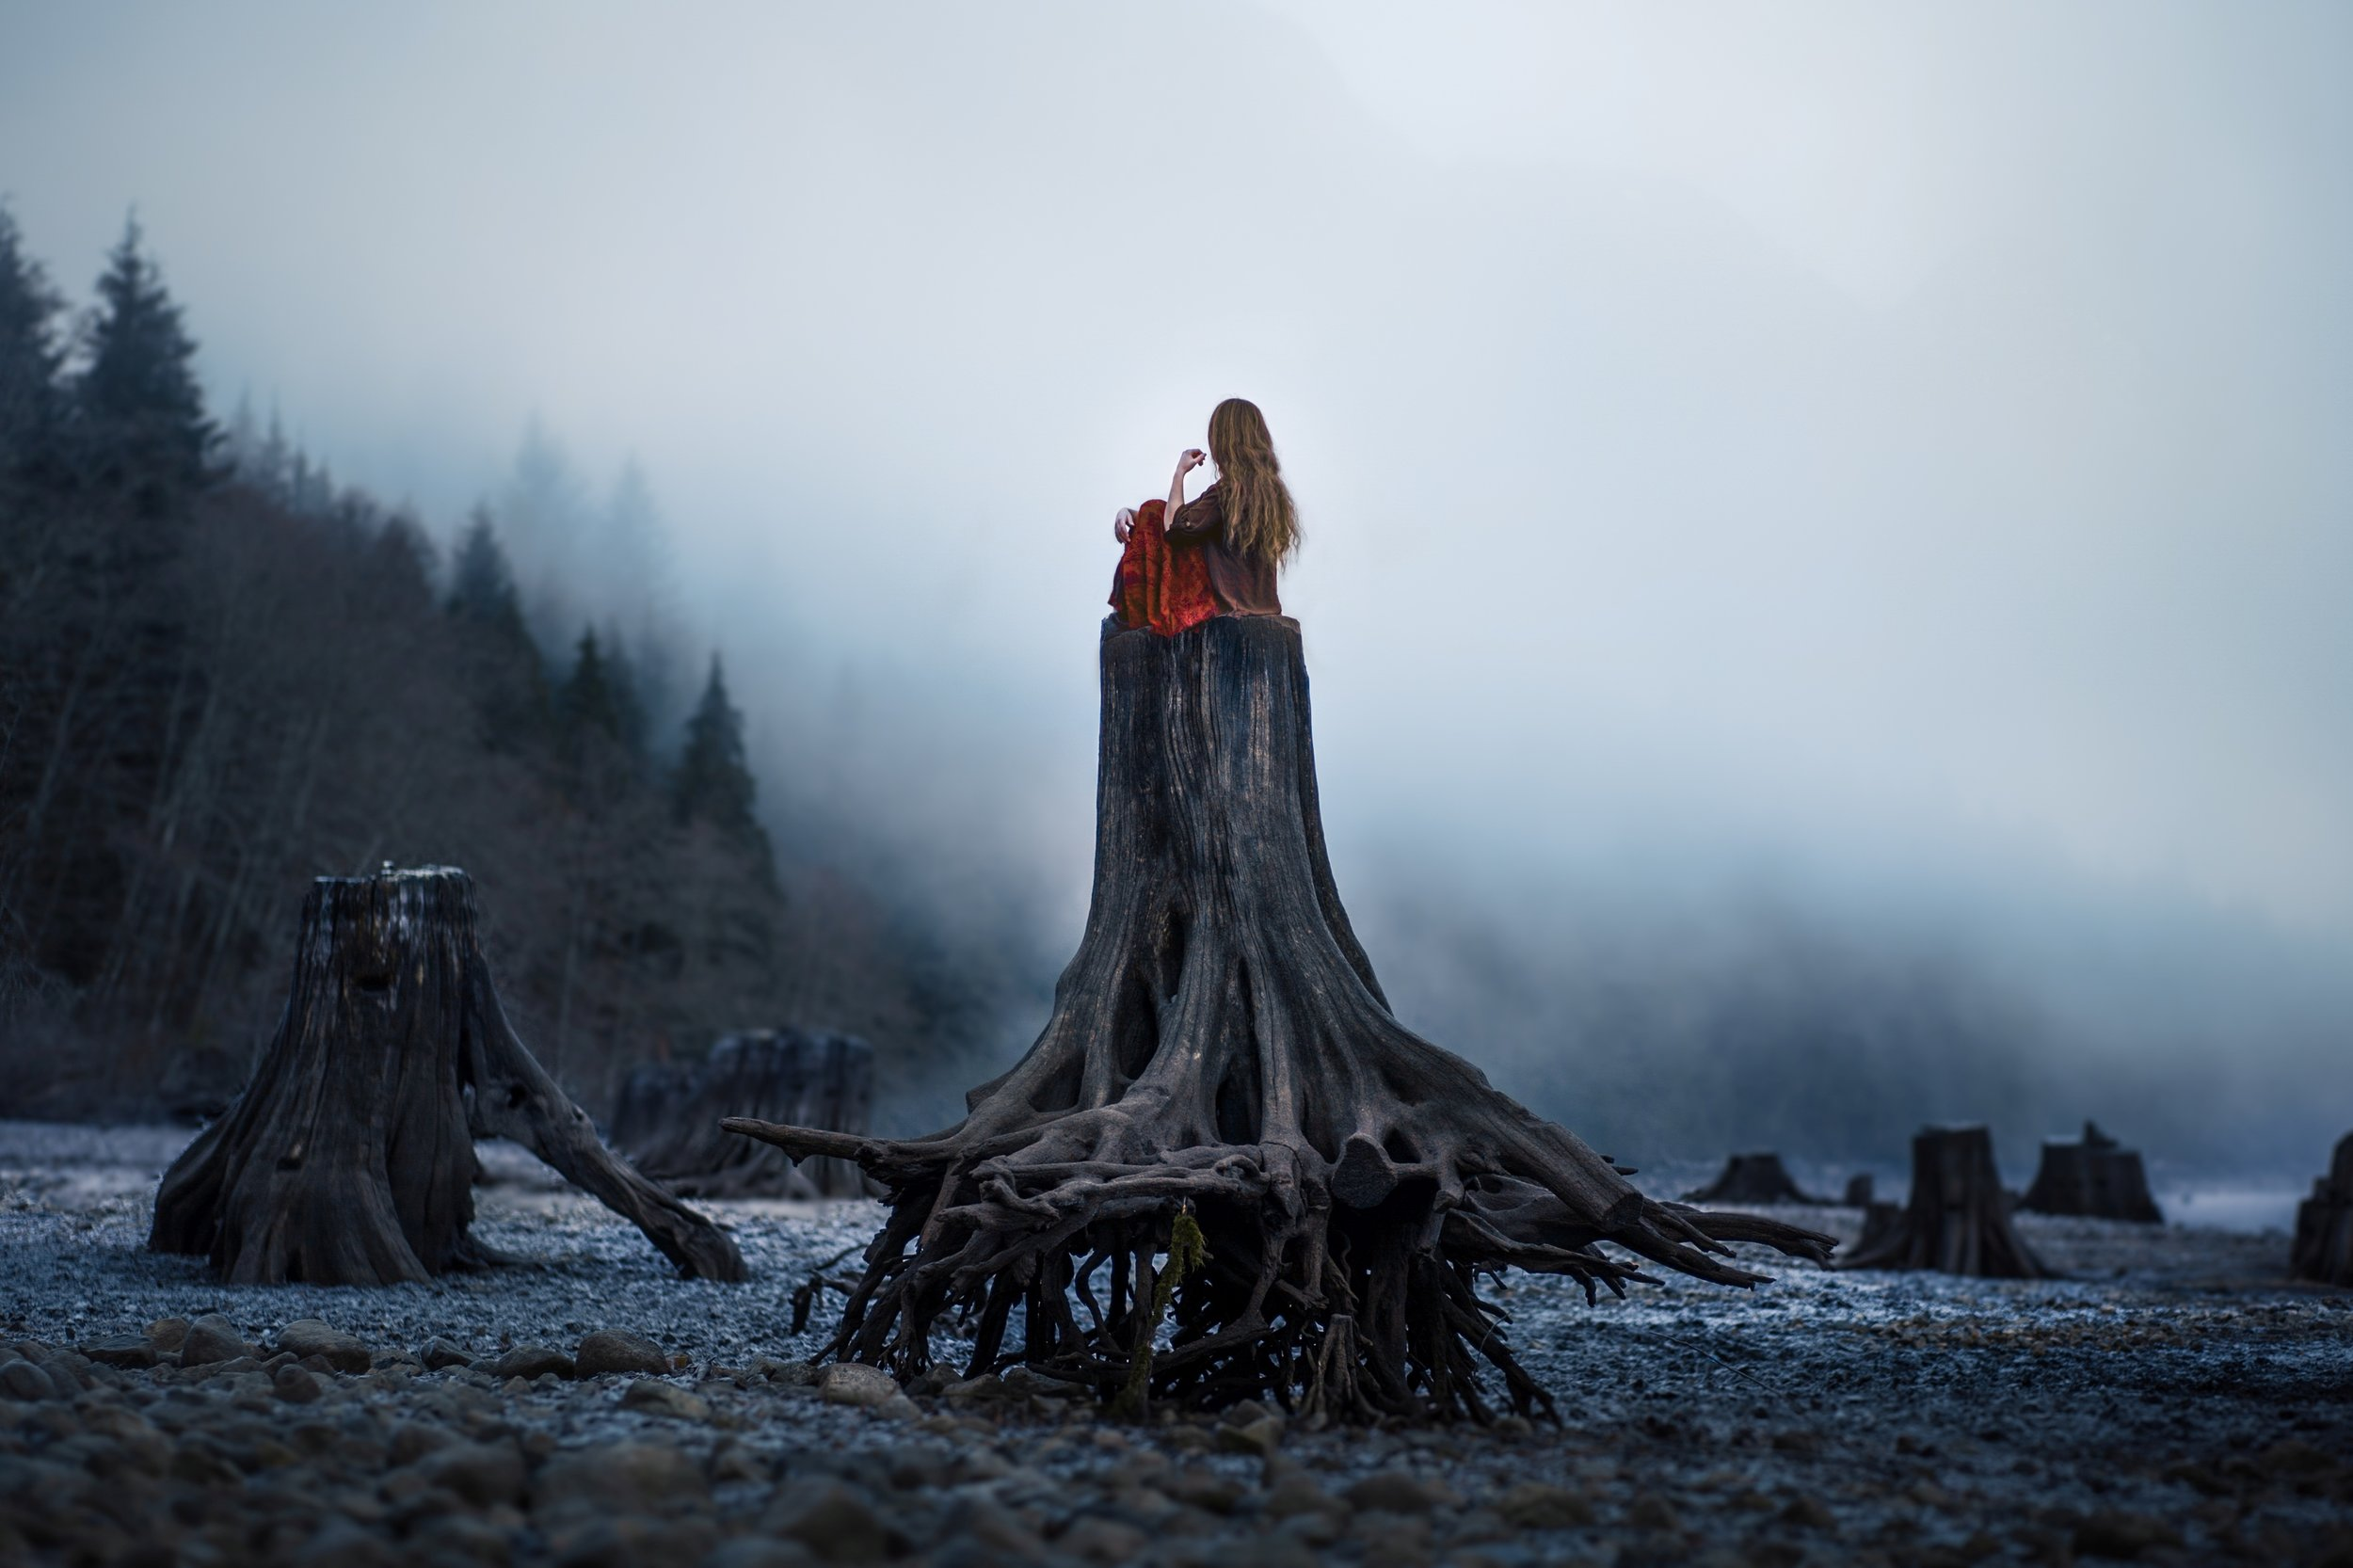 Elizabeth Gadd - First picking up a camera in 2005 at the age of 12, she began creating photographs involving nature and landscapes, eventually leading to the whimsical combination of landscapes with human portraiture (usually self-portraits) that she's known for today. This niche of Lizzy's photography has been described by others as fairytale-esque, dreamy …Visit Elizabeth's Website